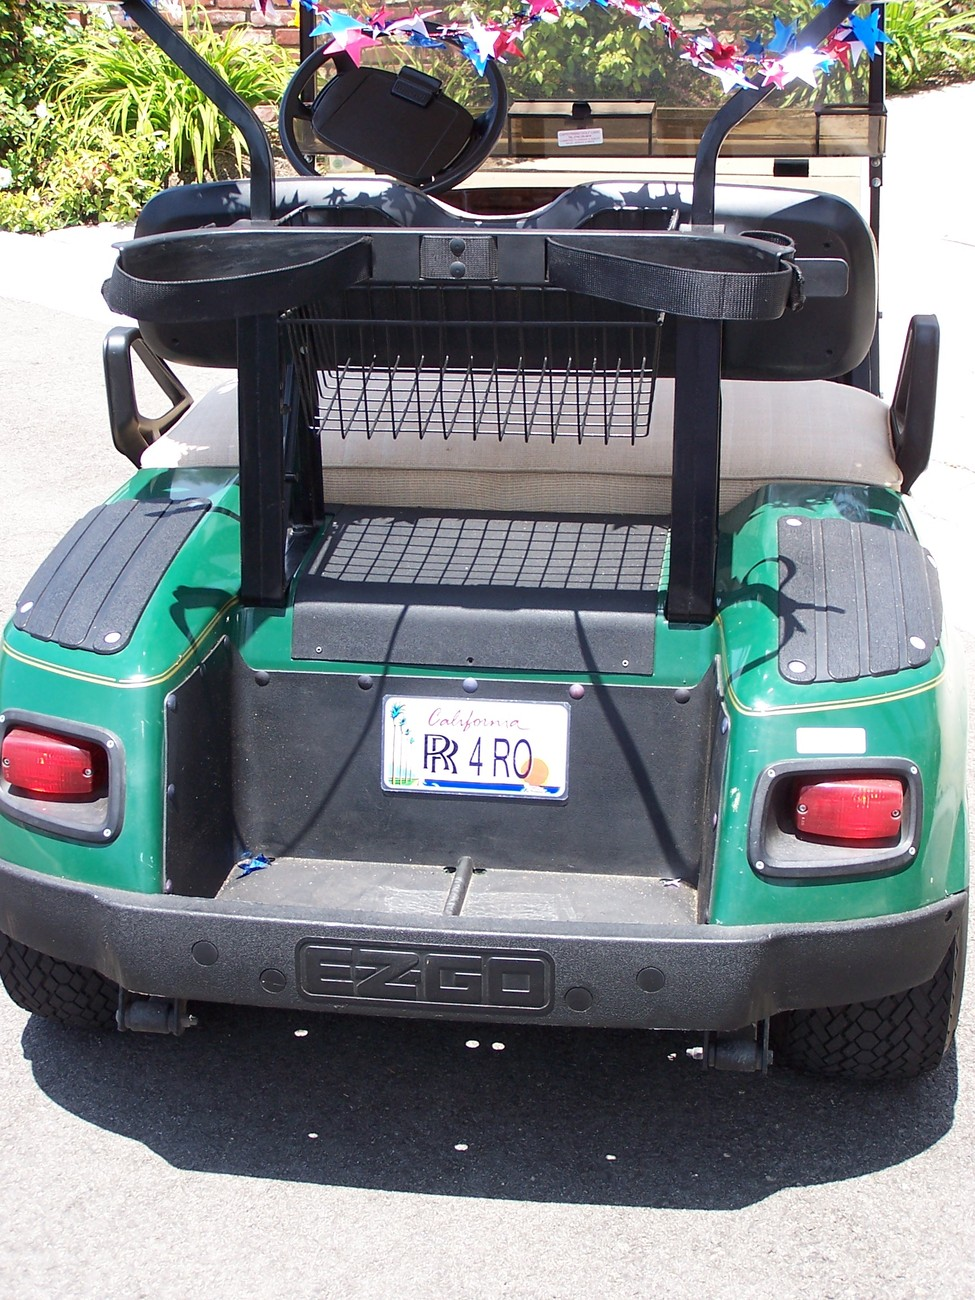 Custom Personalized Iowa golf cart, mobility scooter license, go cart plate